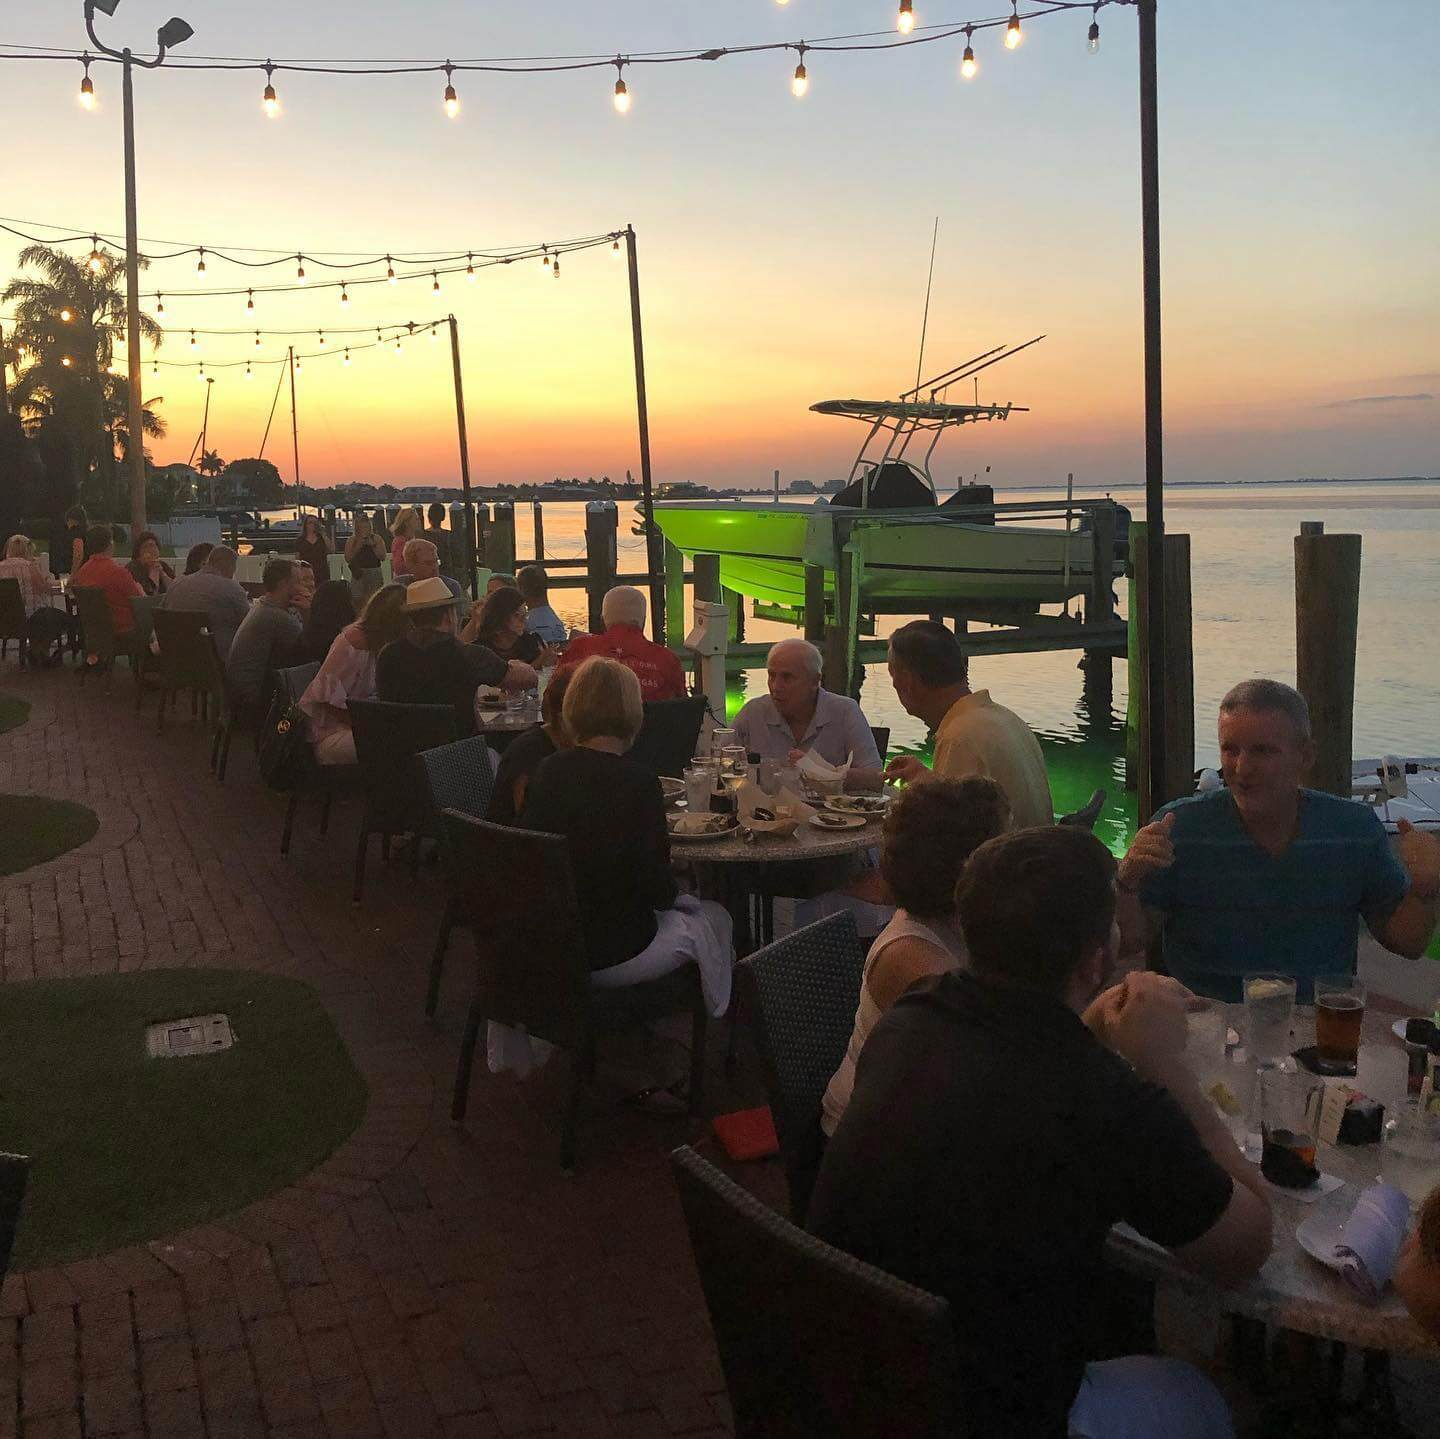 Drydock Waterfront Grill Longboat Key waterfront restaurant and bar Sarasota, Florida.